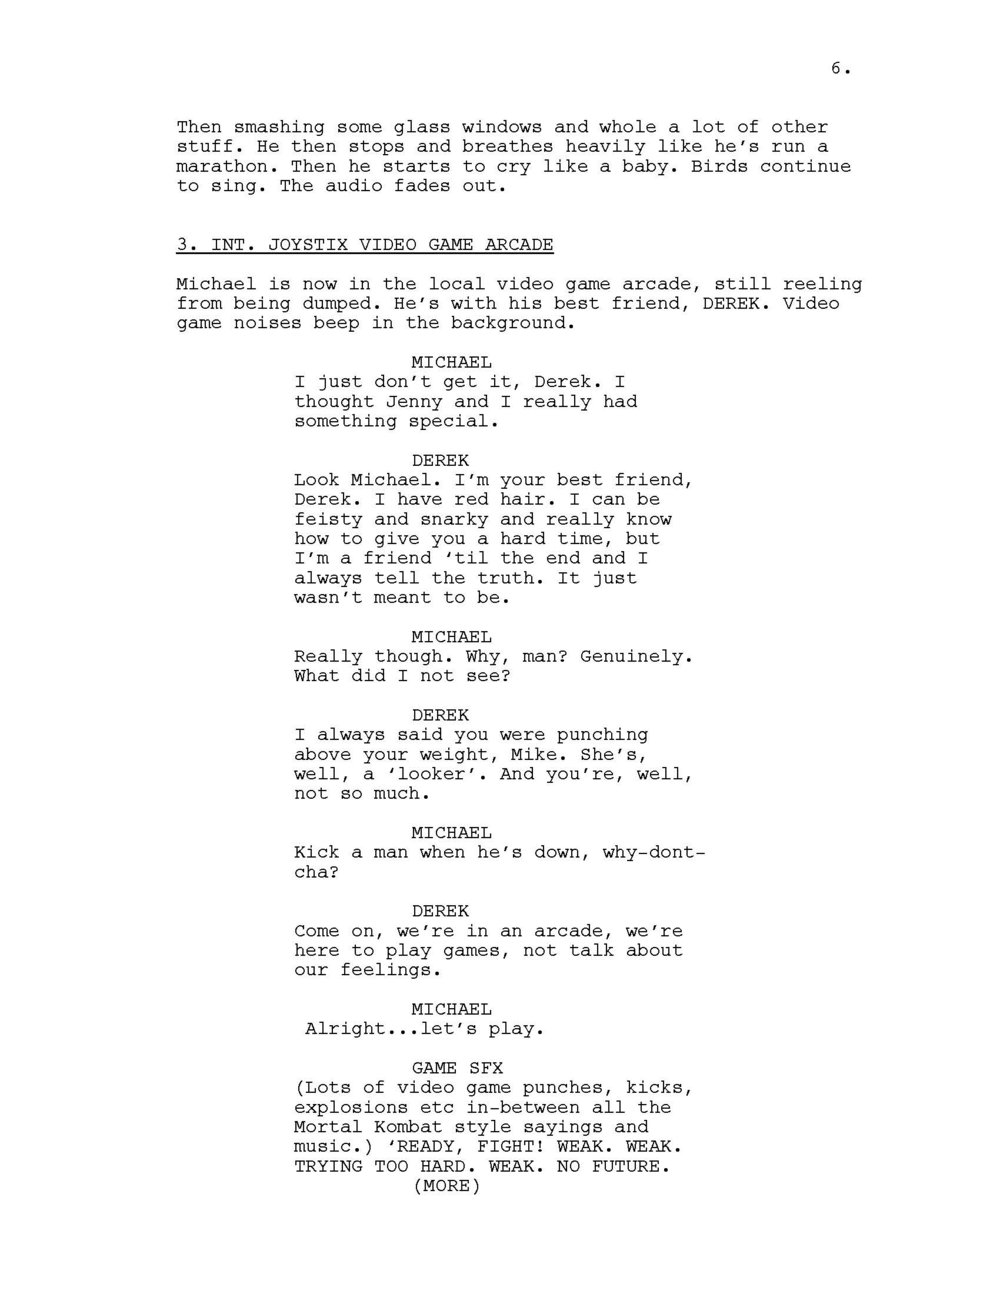 INVISIBLE WORLD SCRIPT_Page_007.jpg